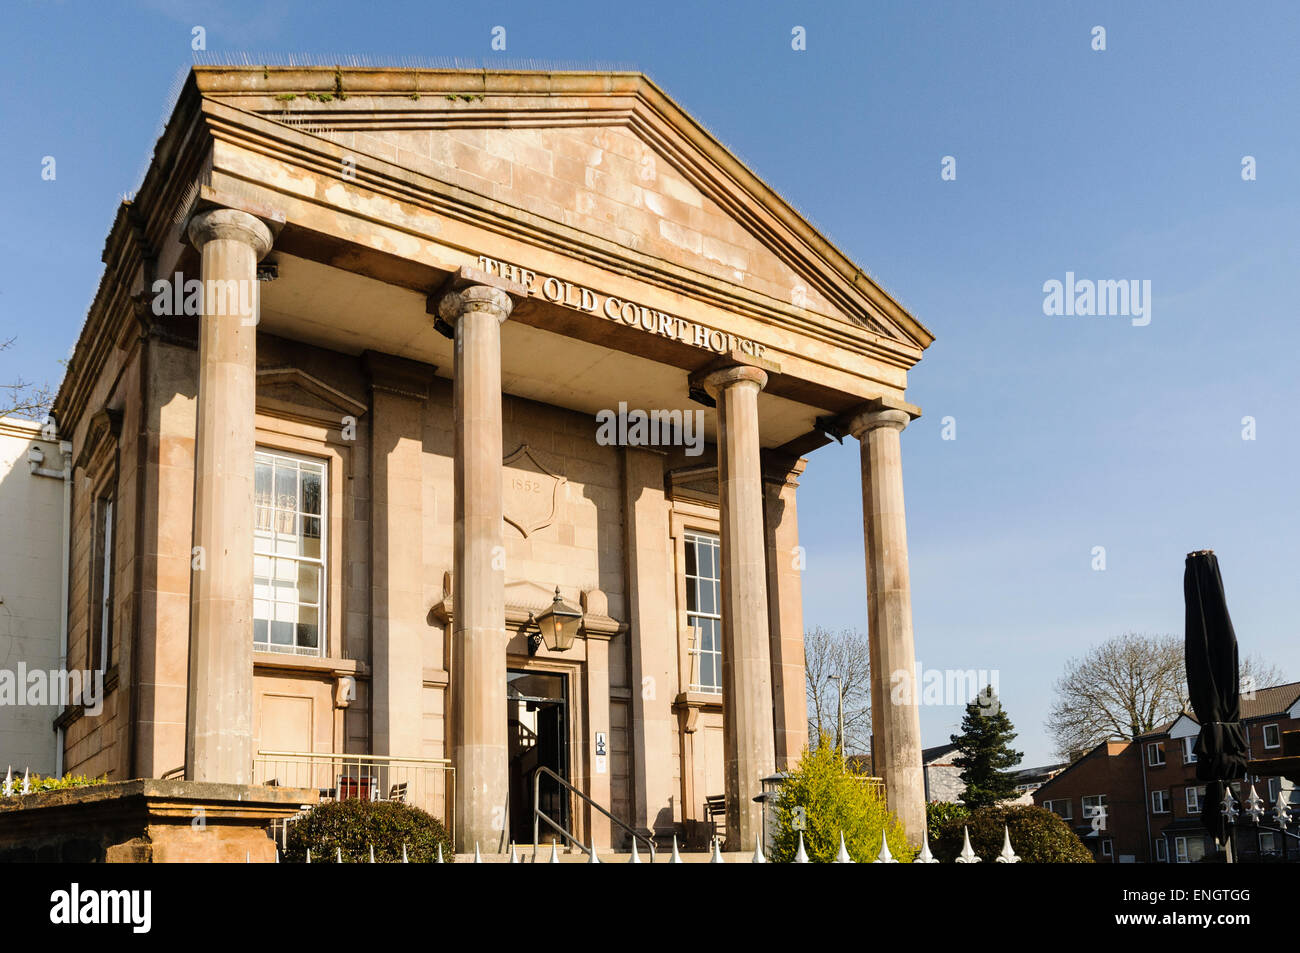 The Old Courthouse, Wetherspoons pub, Coleraine, Northern Ireland - Stock Image